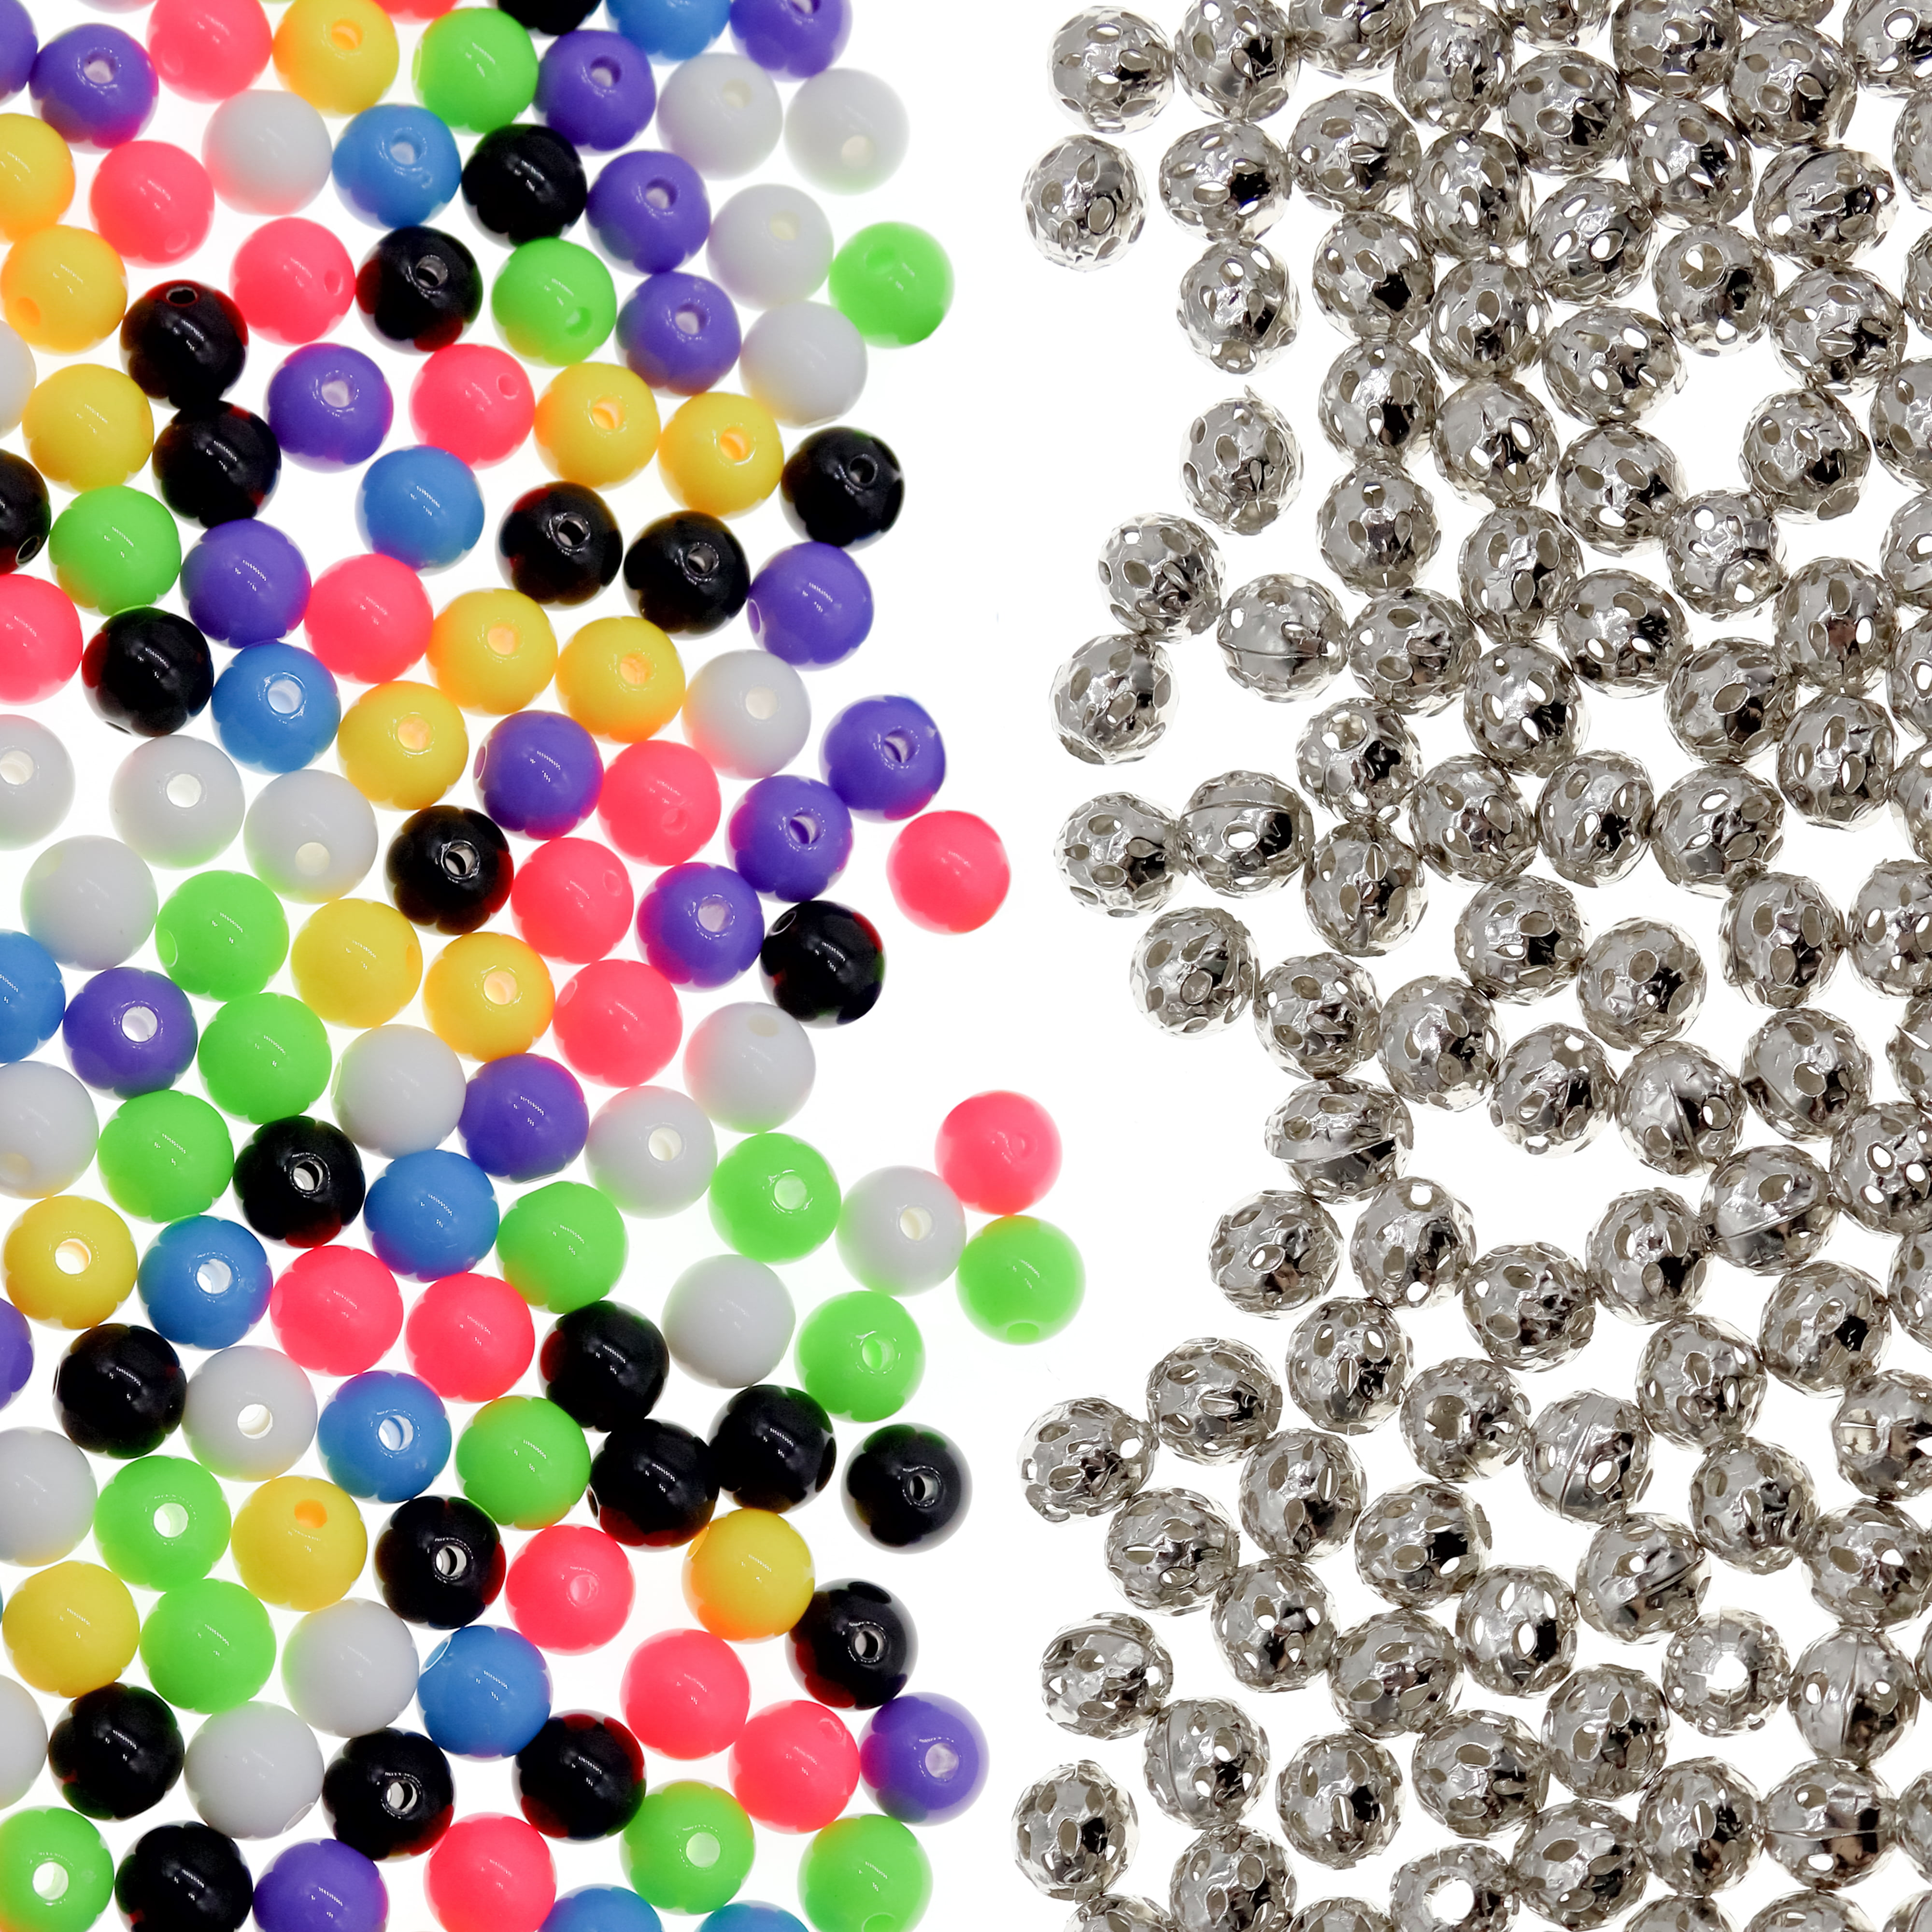 1.4mm Hole 300 Mixed Acrylic Swirl and Strip Glazed Spacer Beads 8mm Round